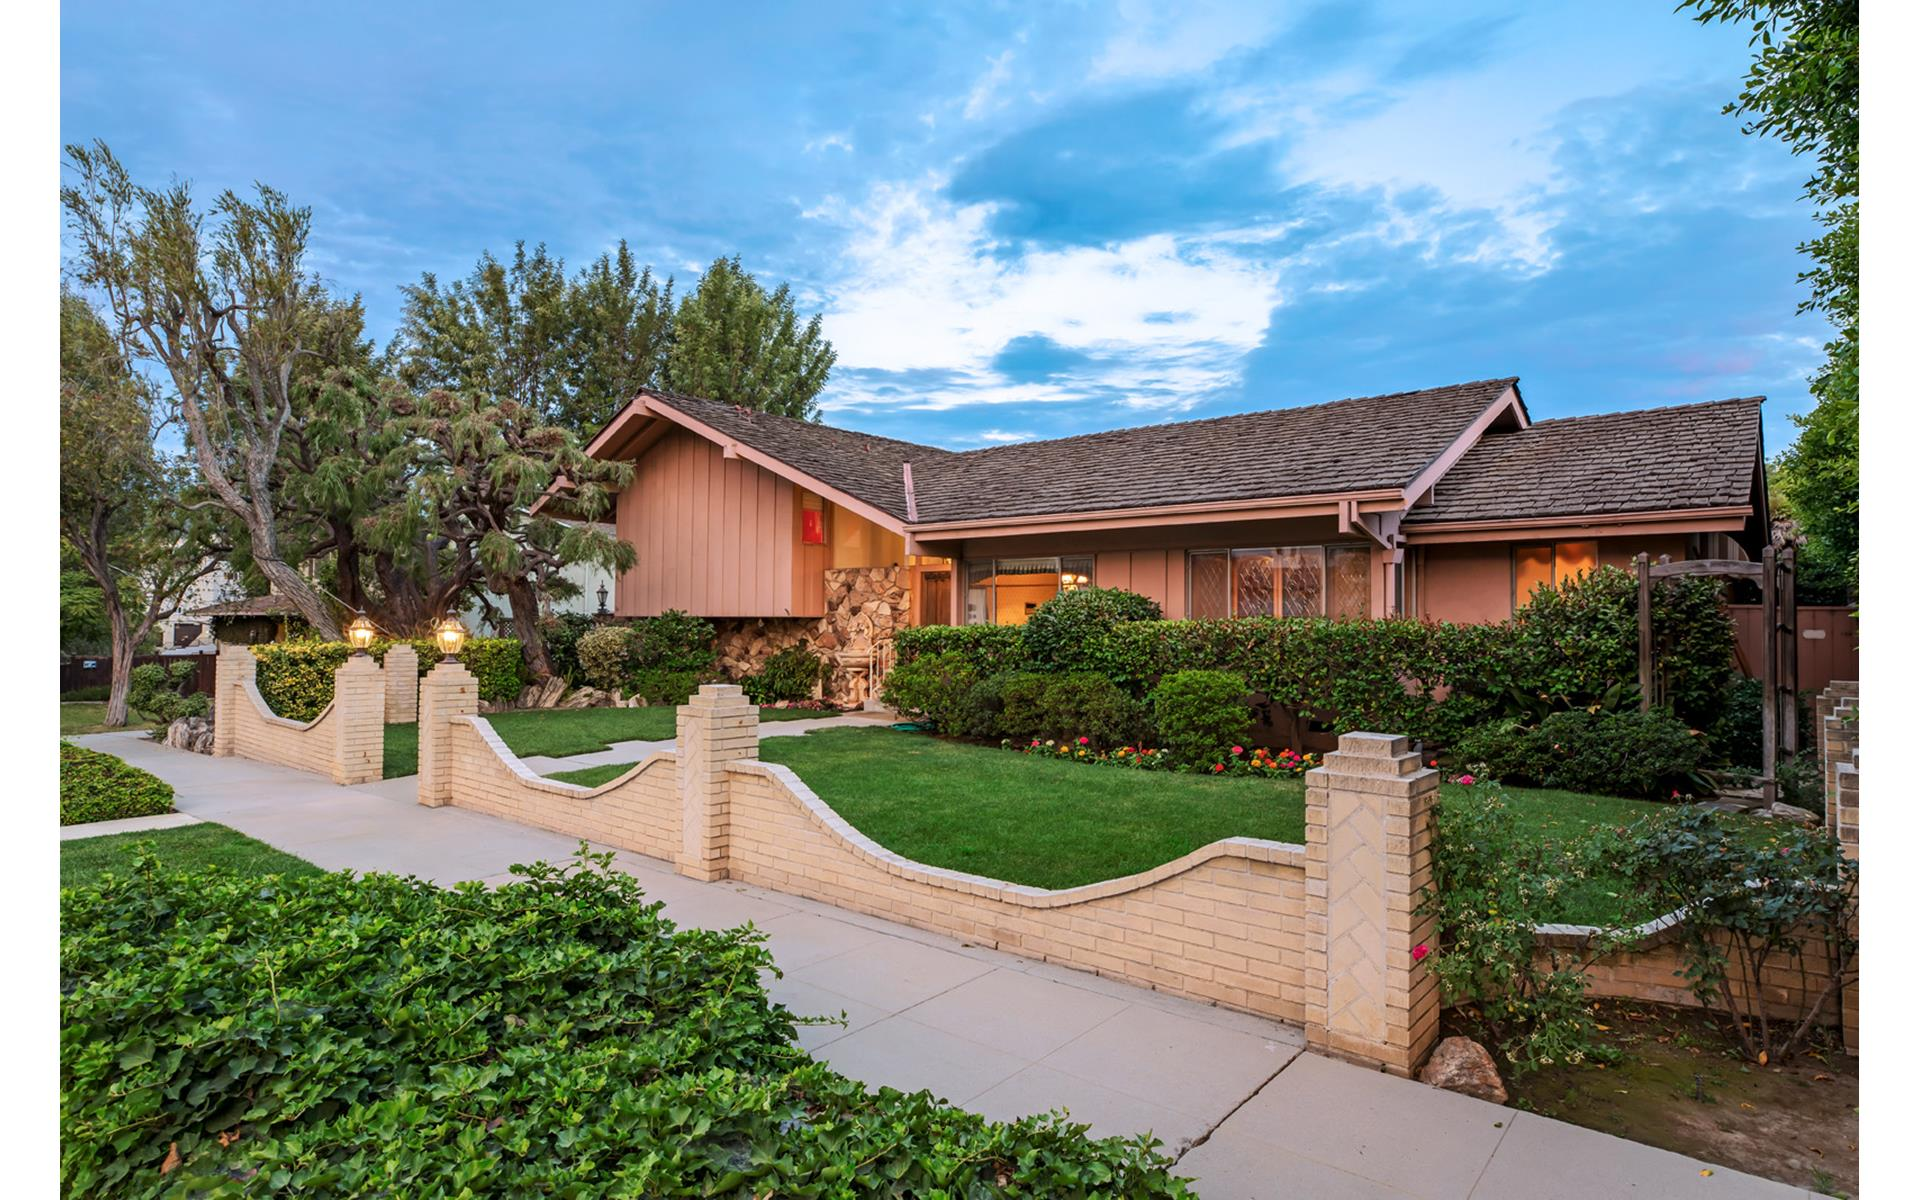 Brady Bunch House Buyer Revealed, and it's Not Lance Bass ...